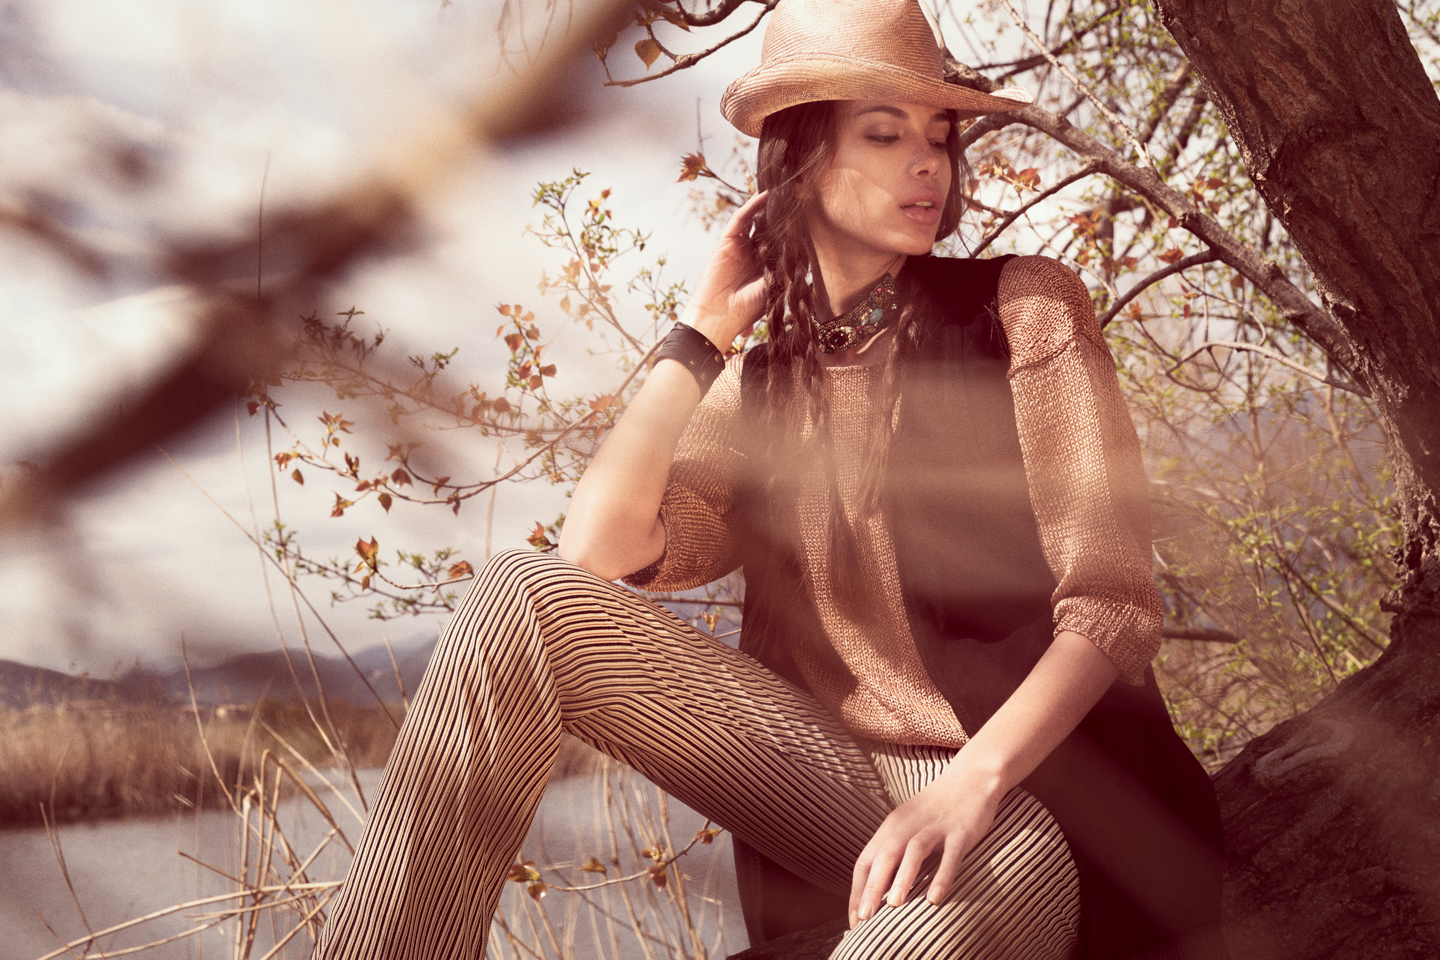 Born on the bayou - fashion editorial for Switch Magazine - Galli / Trevisan photographers